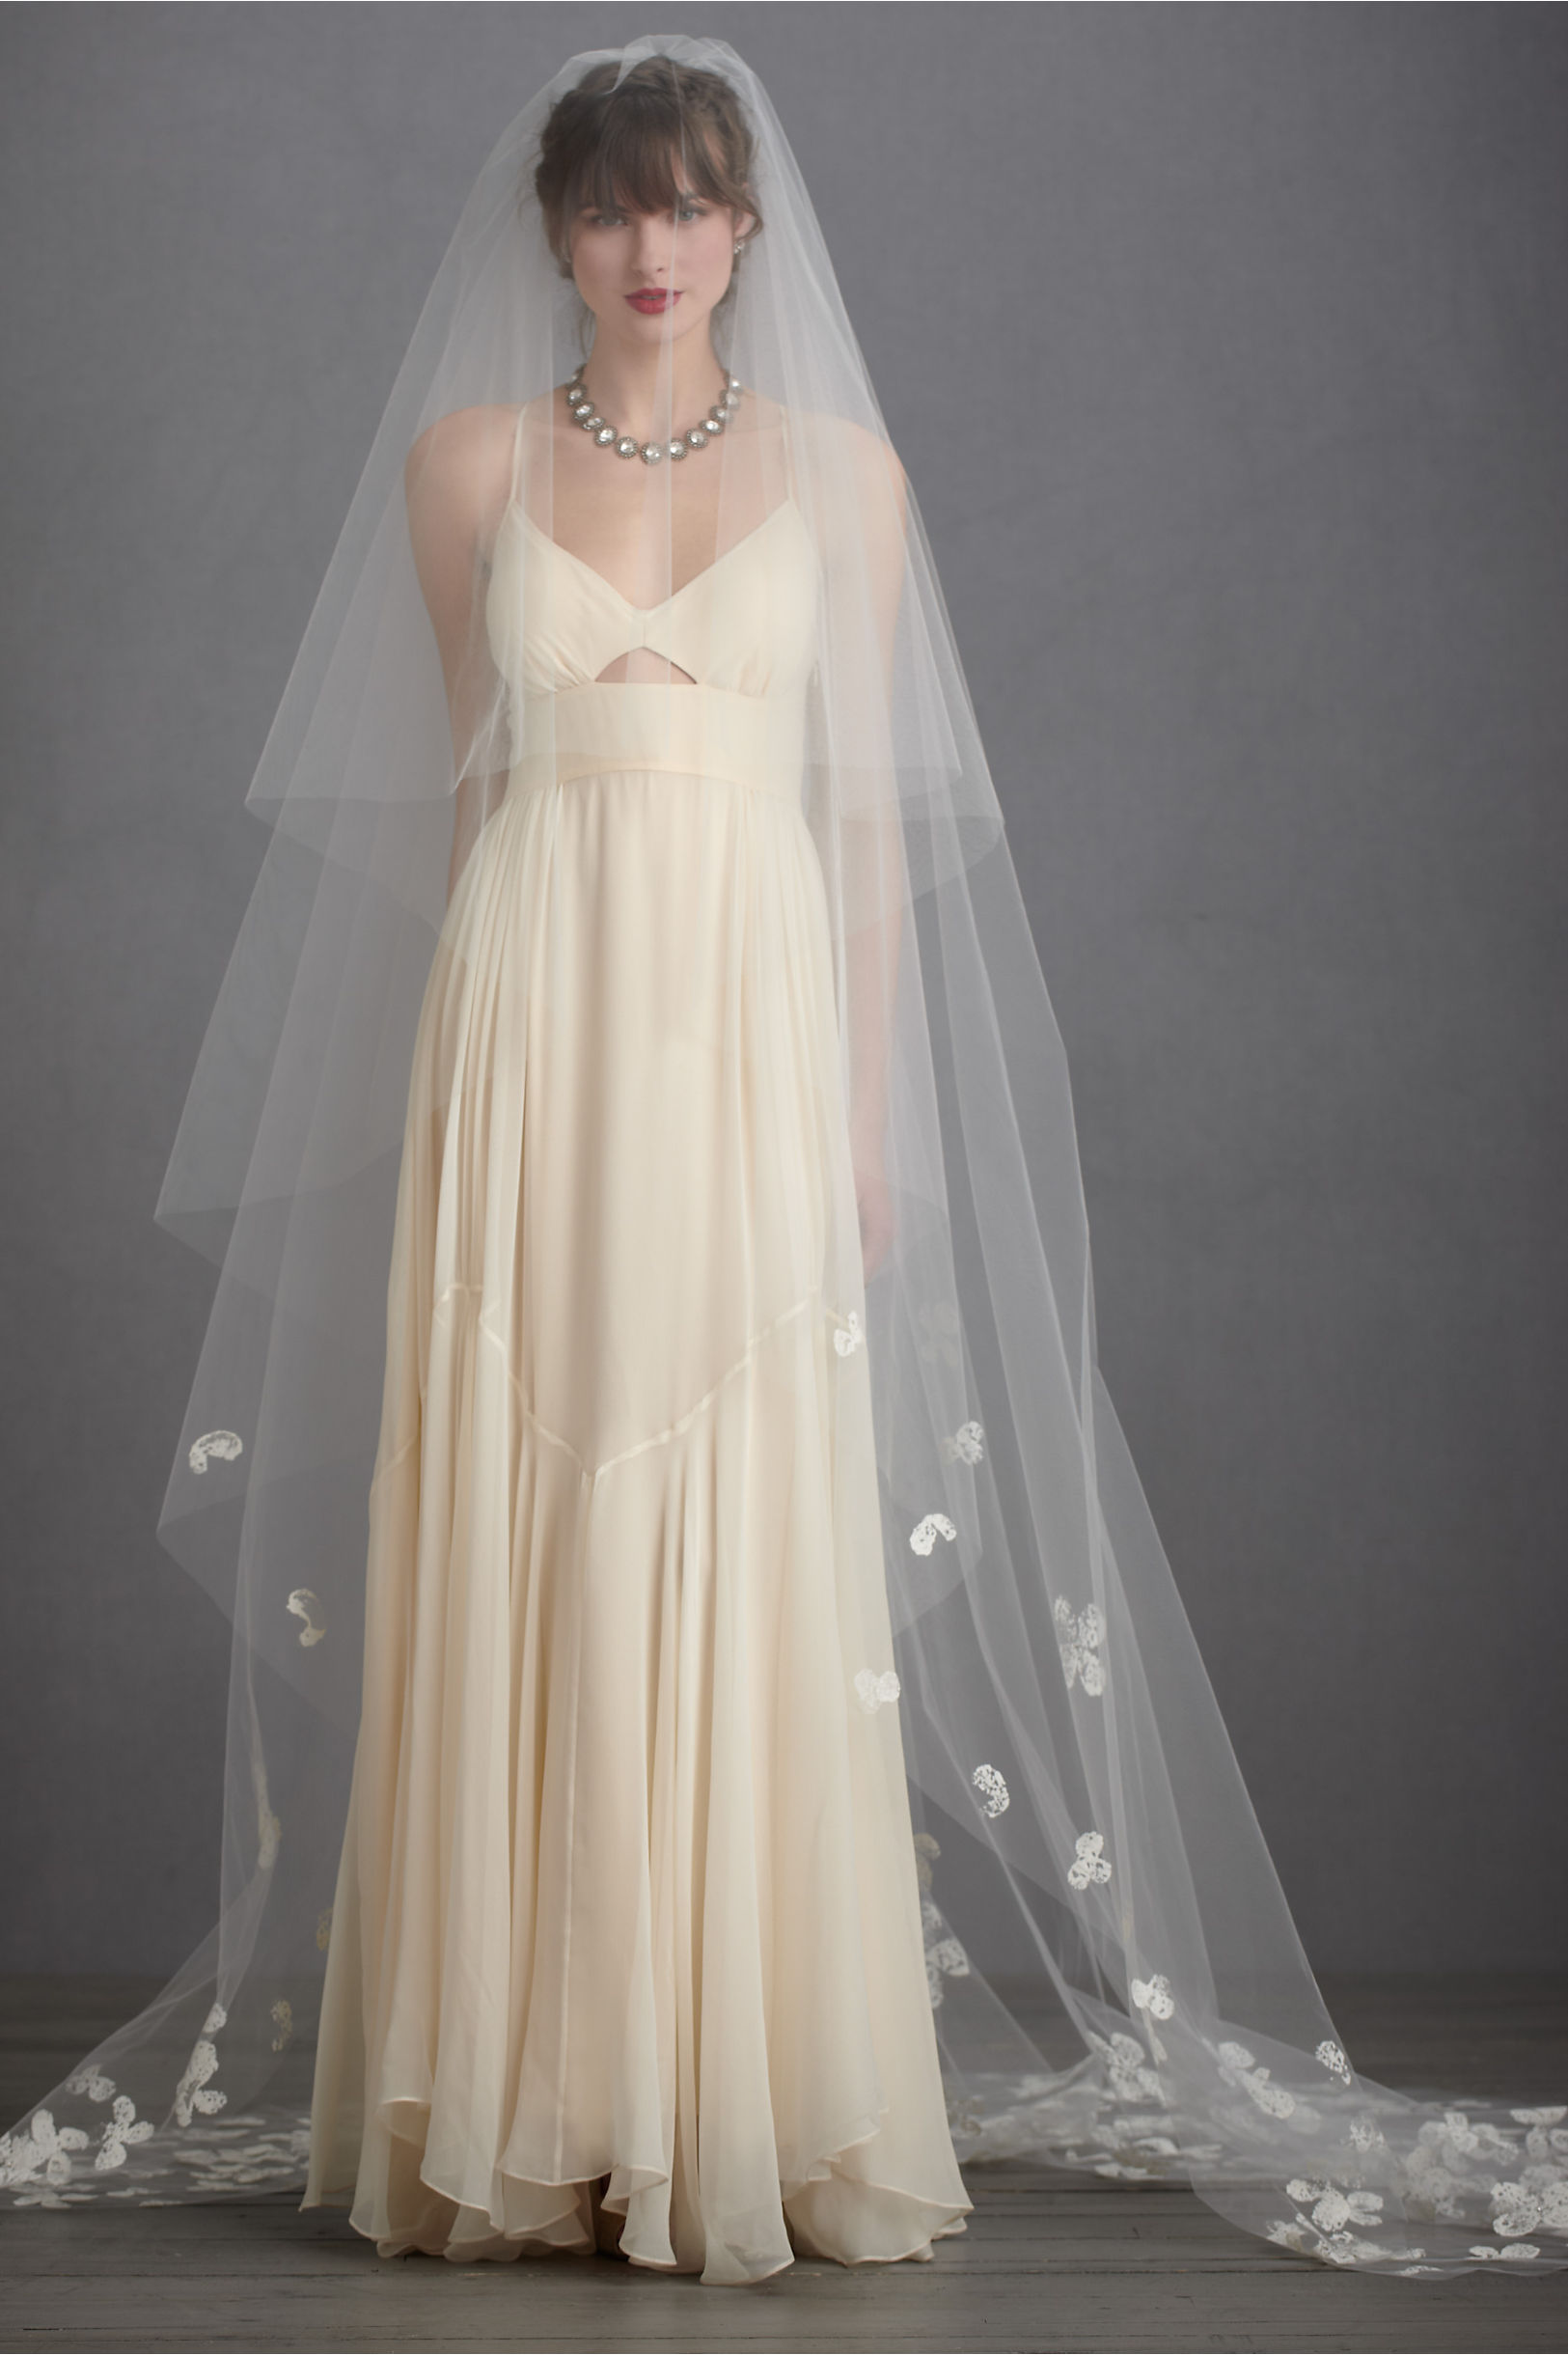 Arte color estamparia divinopolis - Debra Moreland Diamond White Buoyant Blooms Veil Bhldn